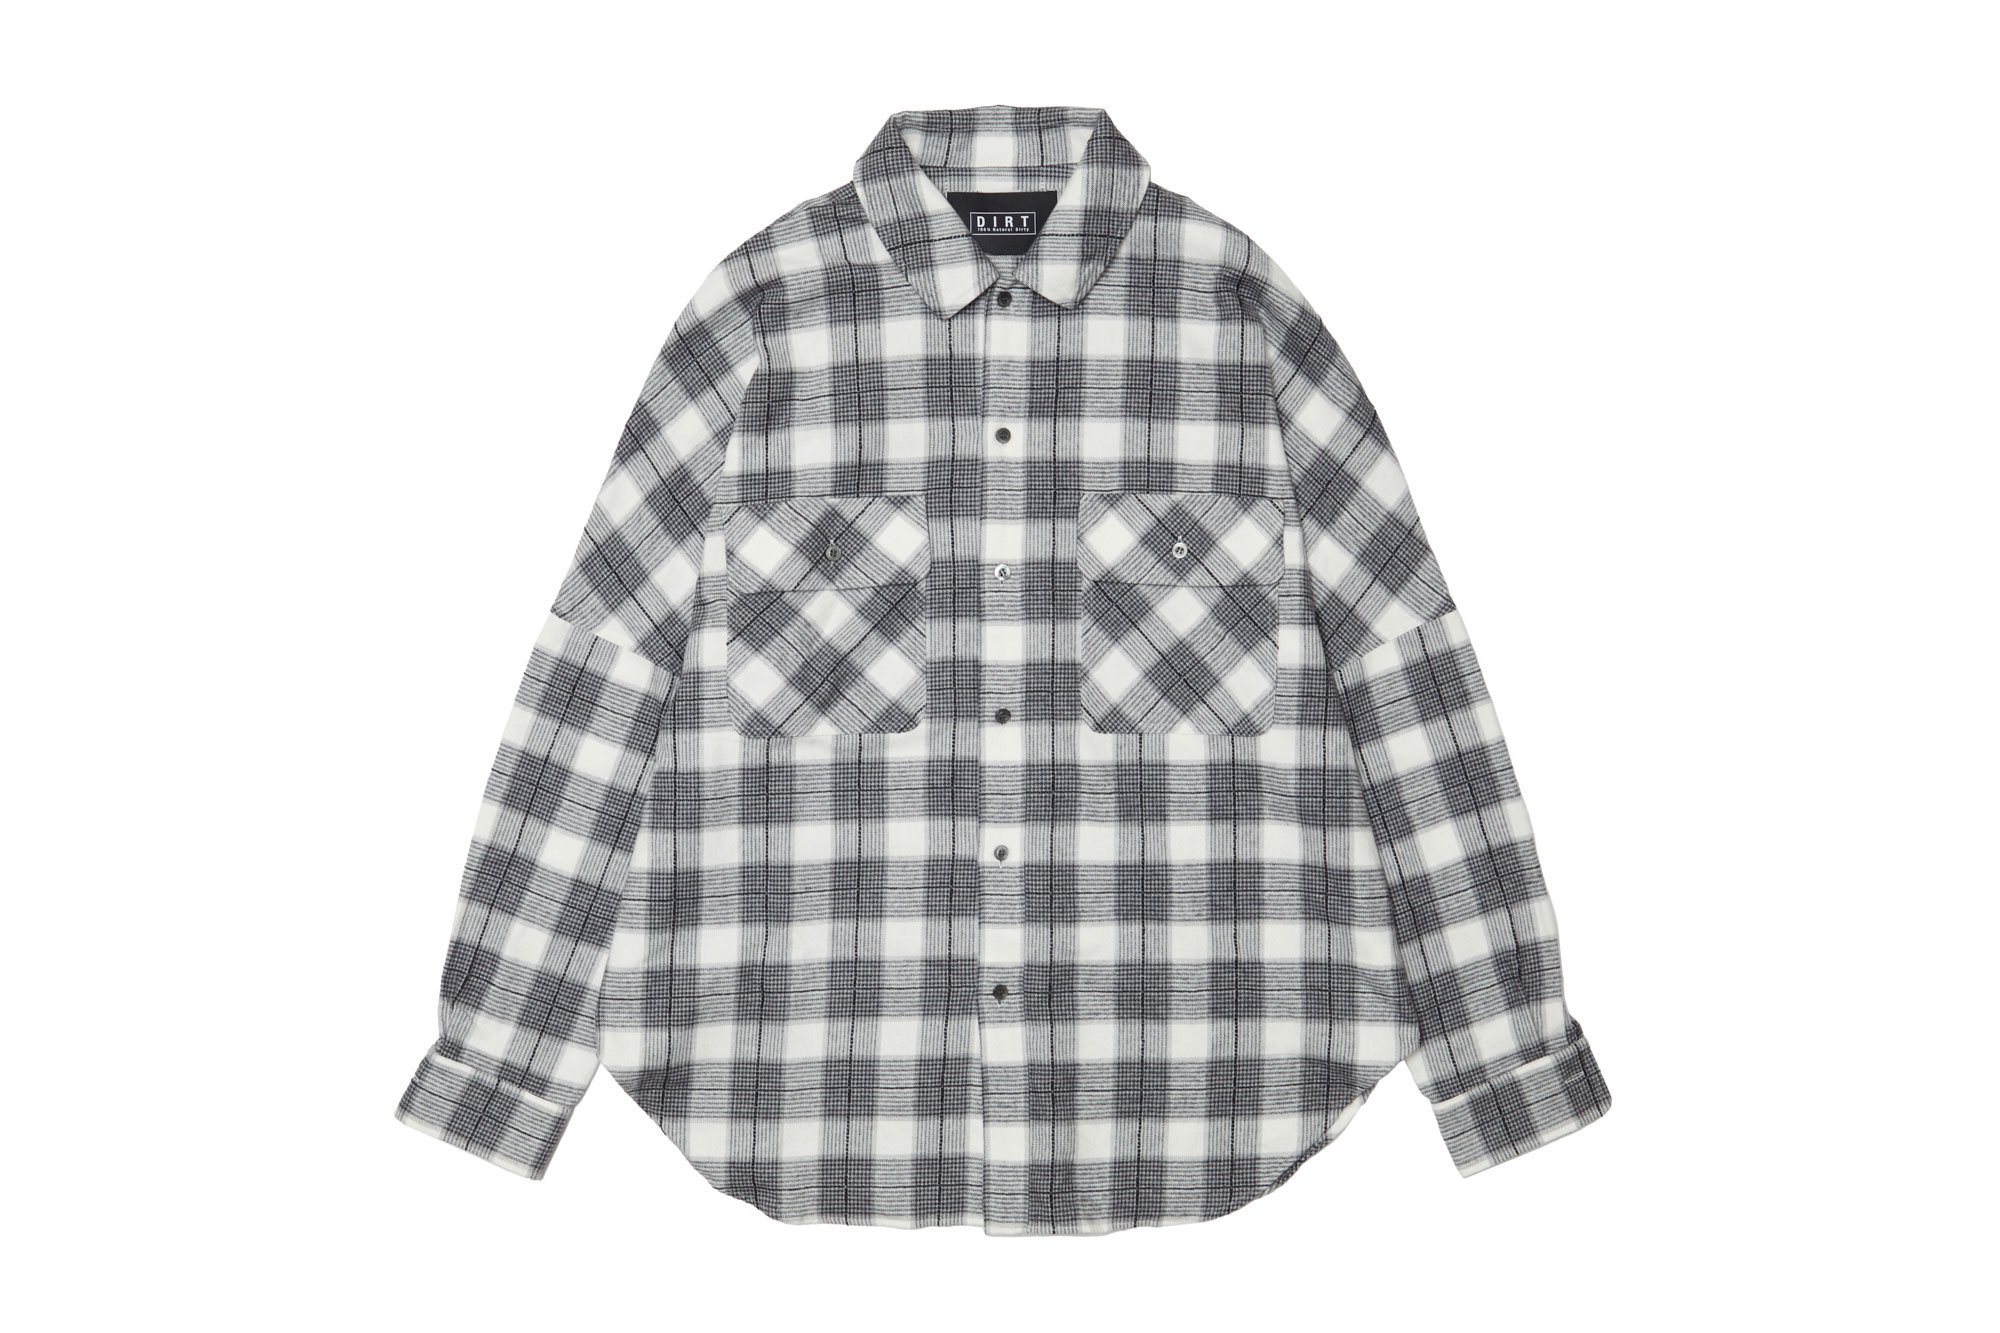 <img class='new_mark_img1' src='https://img.shop-pro.jp/img/new/icons14.gif' style='border:none;display:inline;margin:0px;padding:0px;width:auto;' />2020AW collection Chenille Yarn Flannel Shirt MONOCHROME